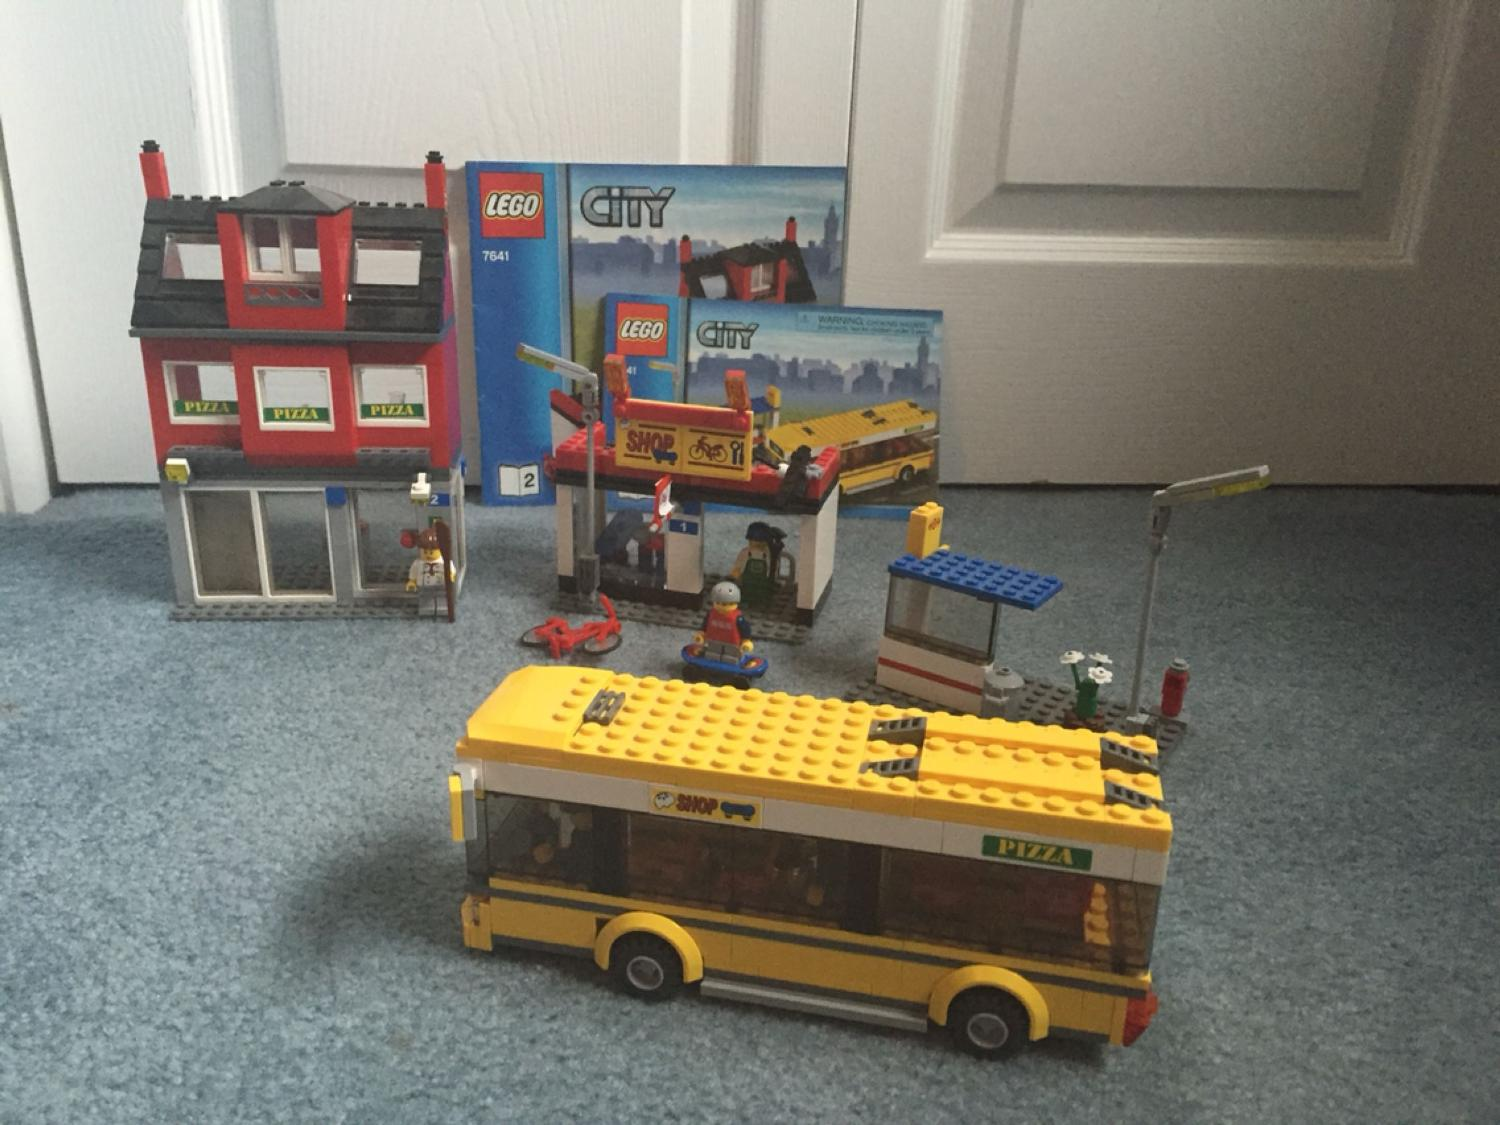 Find More Lego 7641 City Corner Pizzeria Bike Shop Bus And Bus